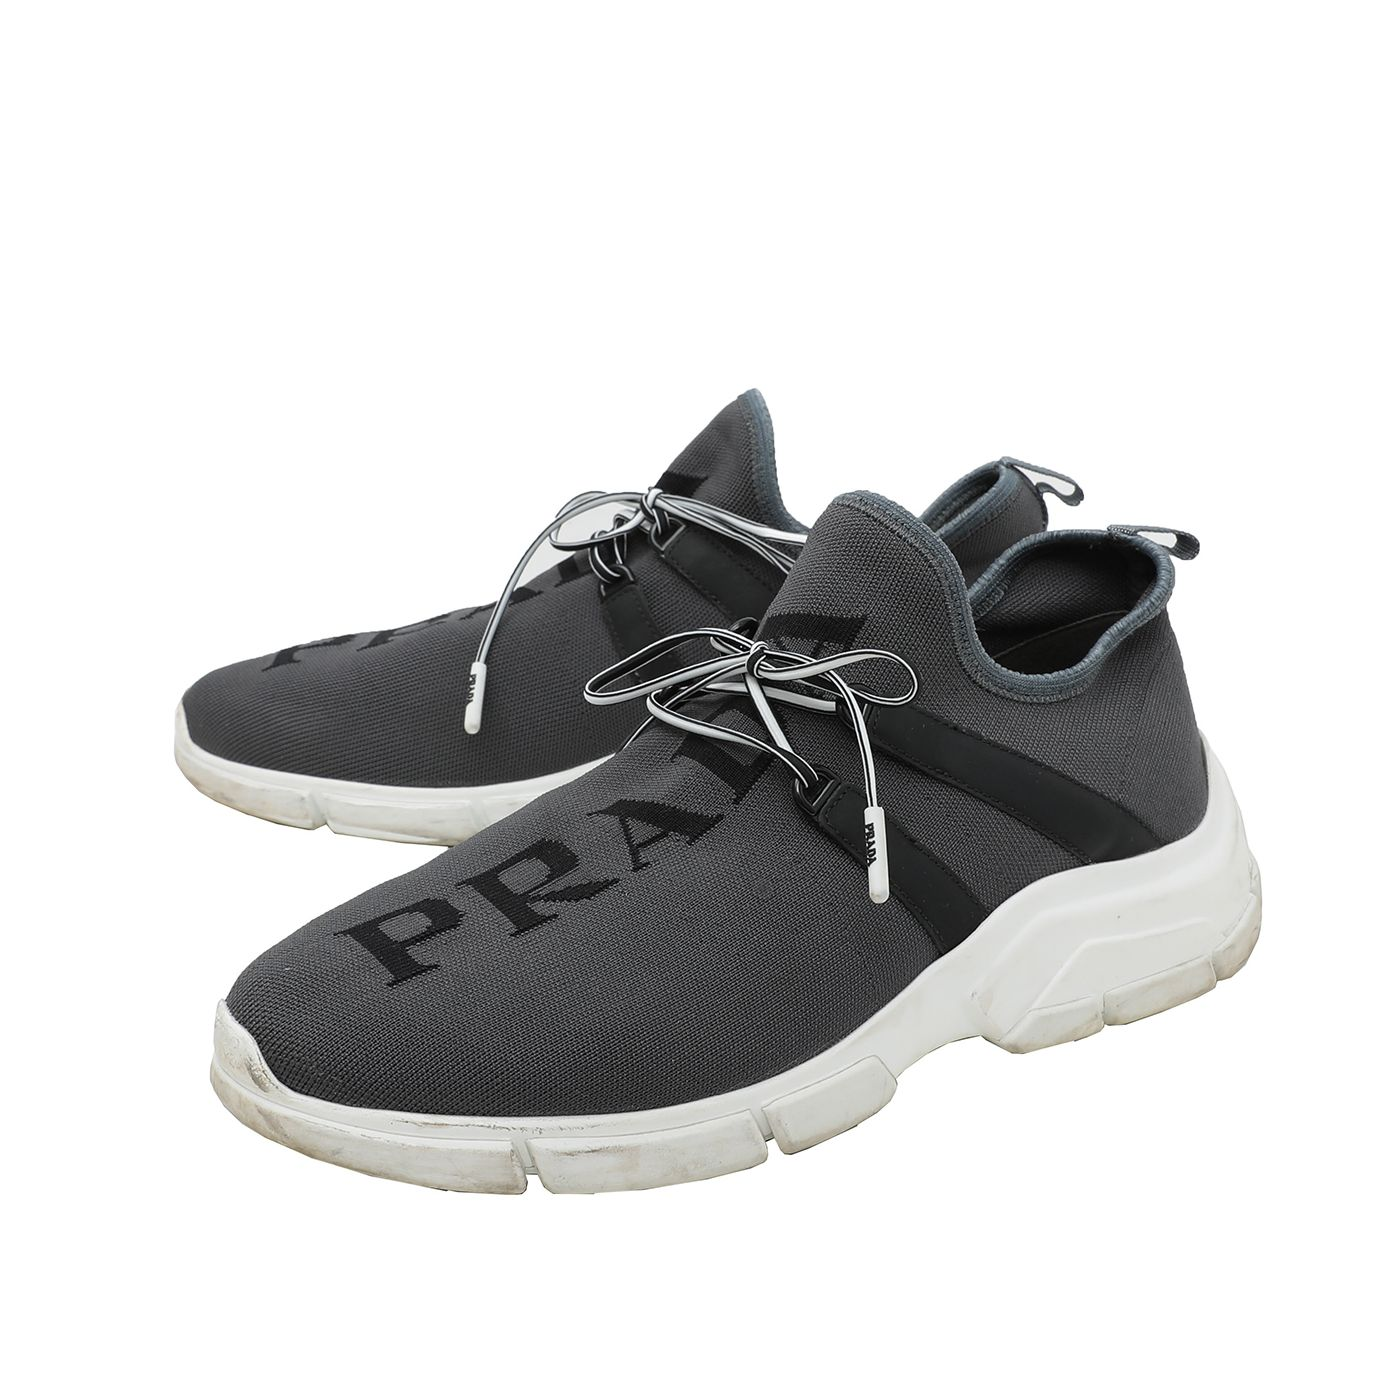 Prada Grey Knit Sneakers 38